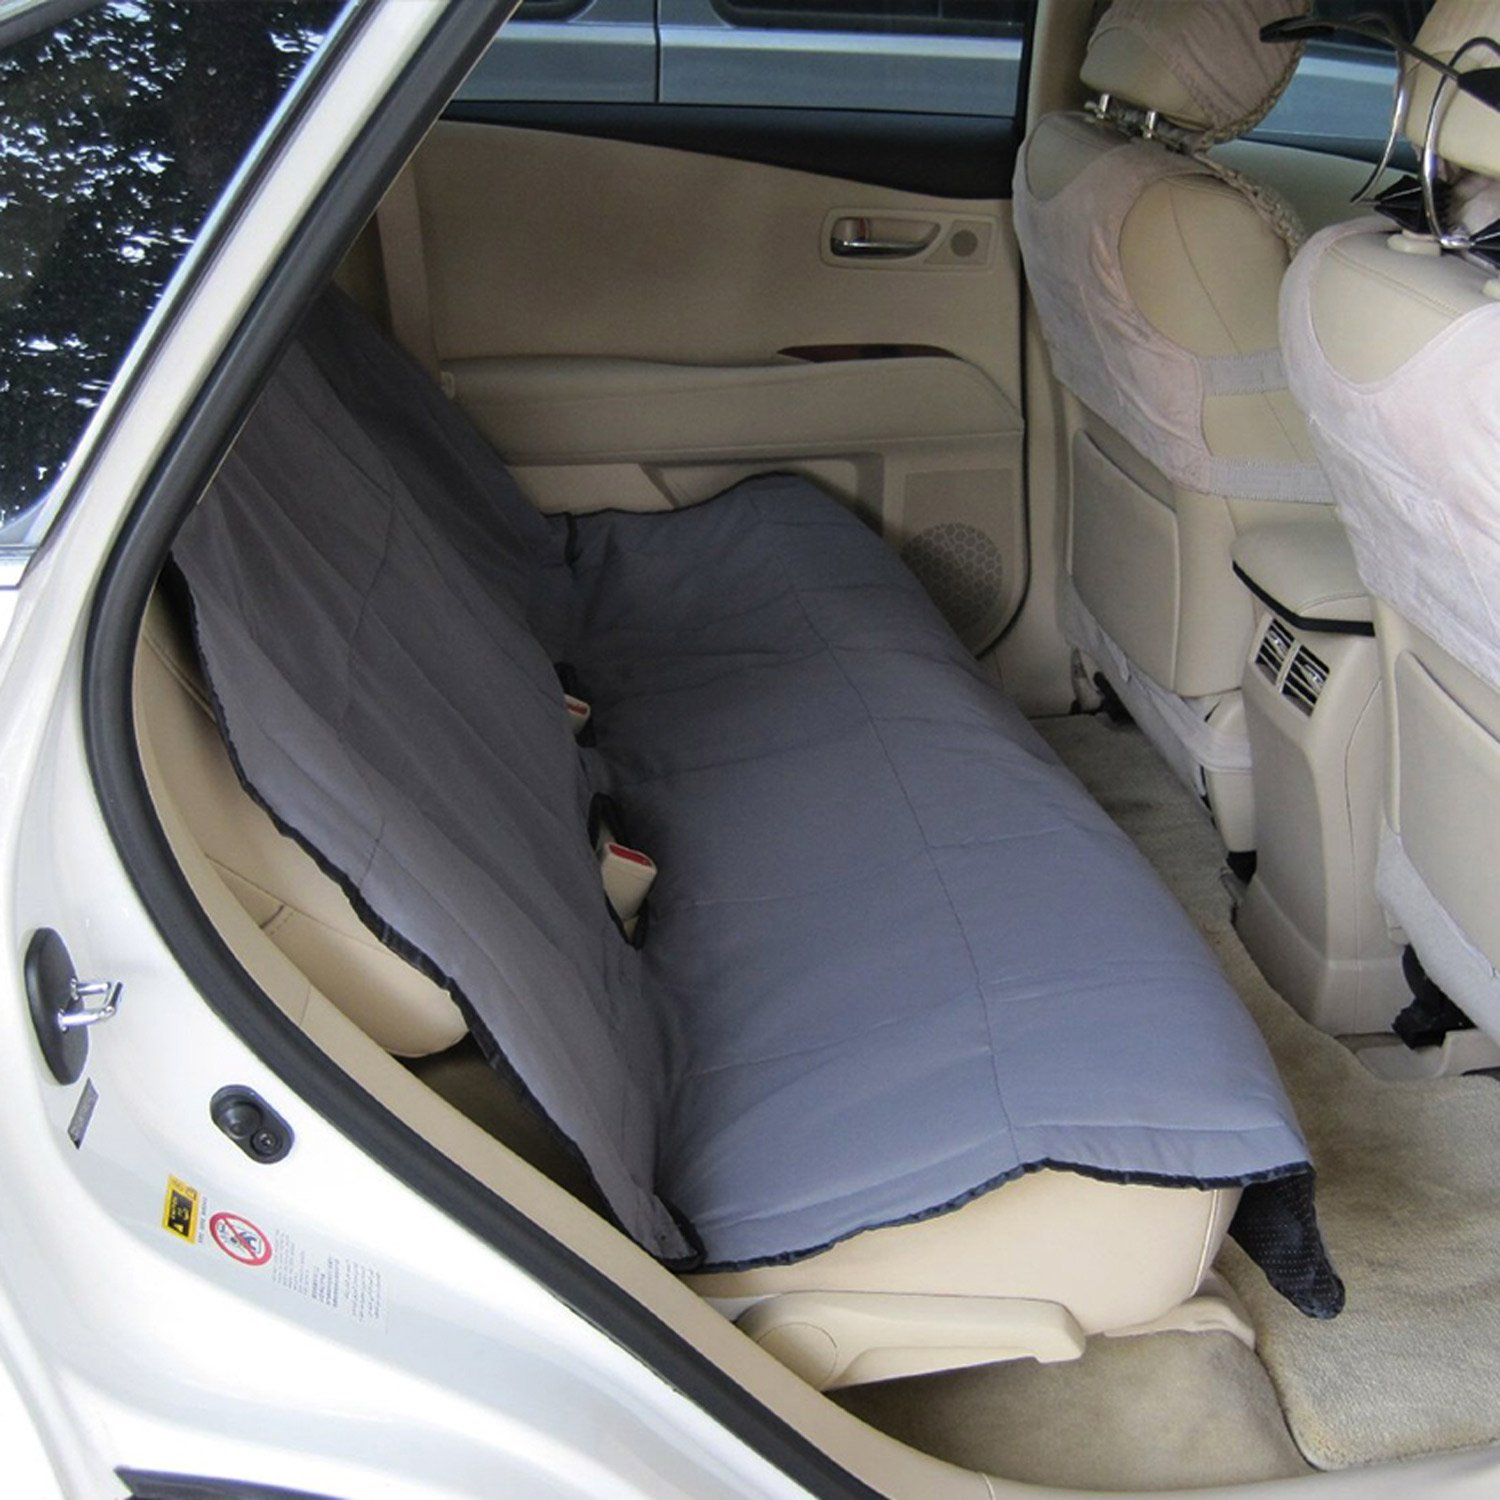 Yes4All Waterproof Hammock Back Seat Cover for Pets. Quilted - MS-011 Gray - ²PUDPZ